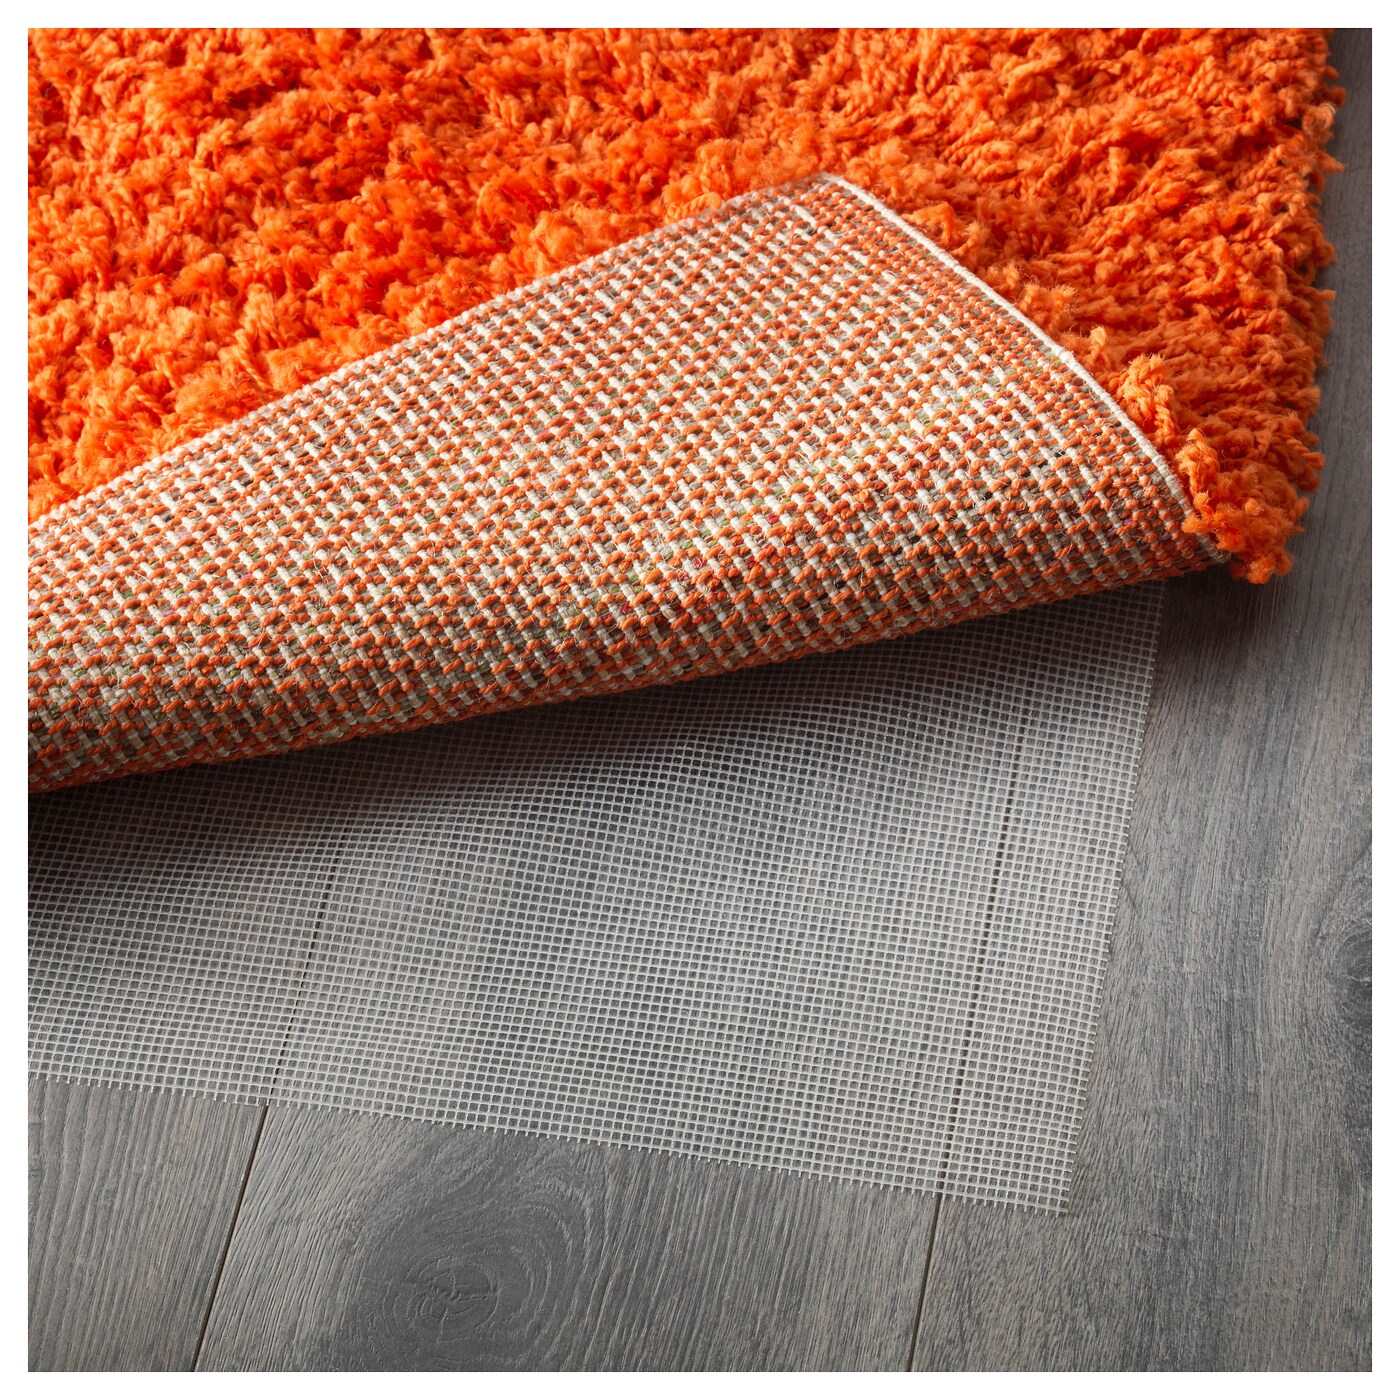 Ikea Teppich 80x80 Hampen Rug High Pile Orange 80x80 Cm Ikea